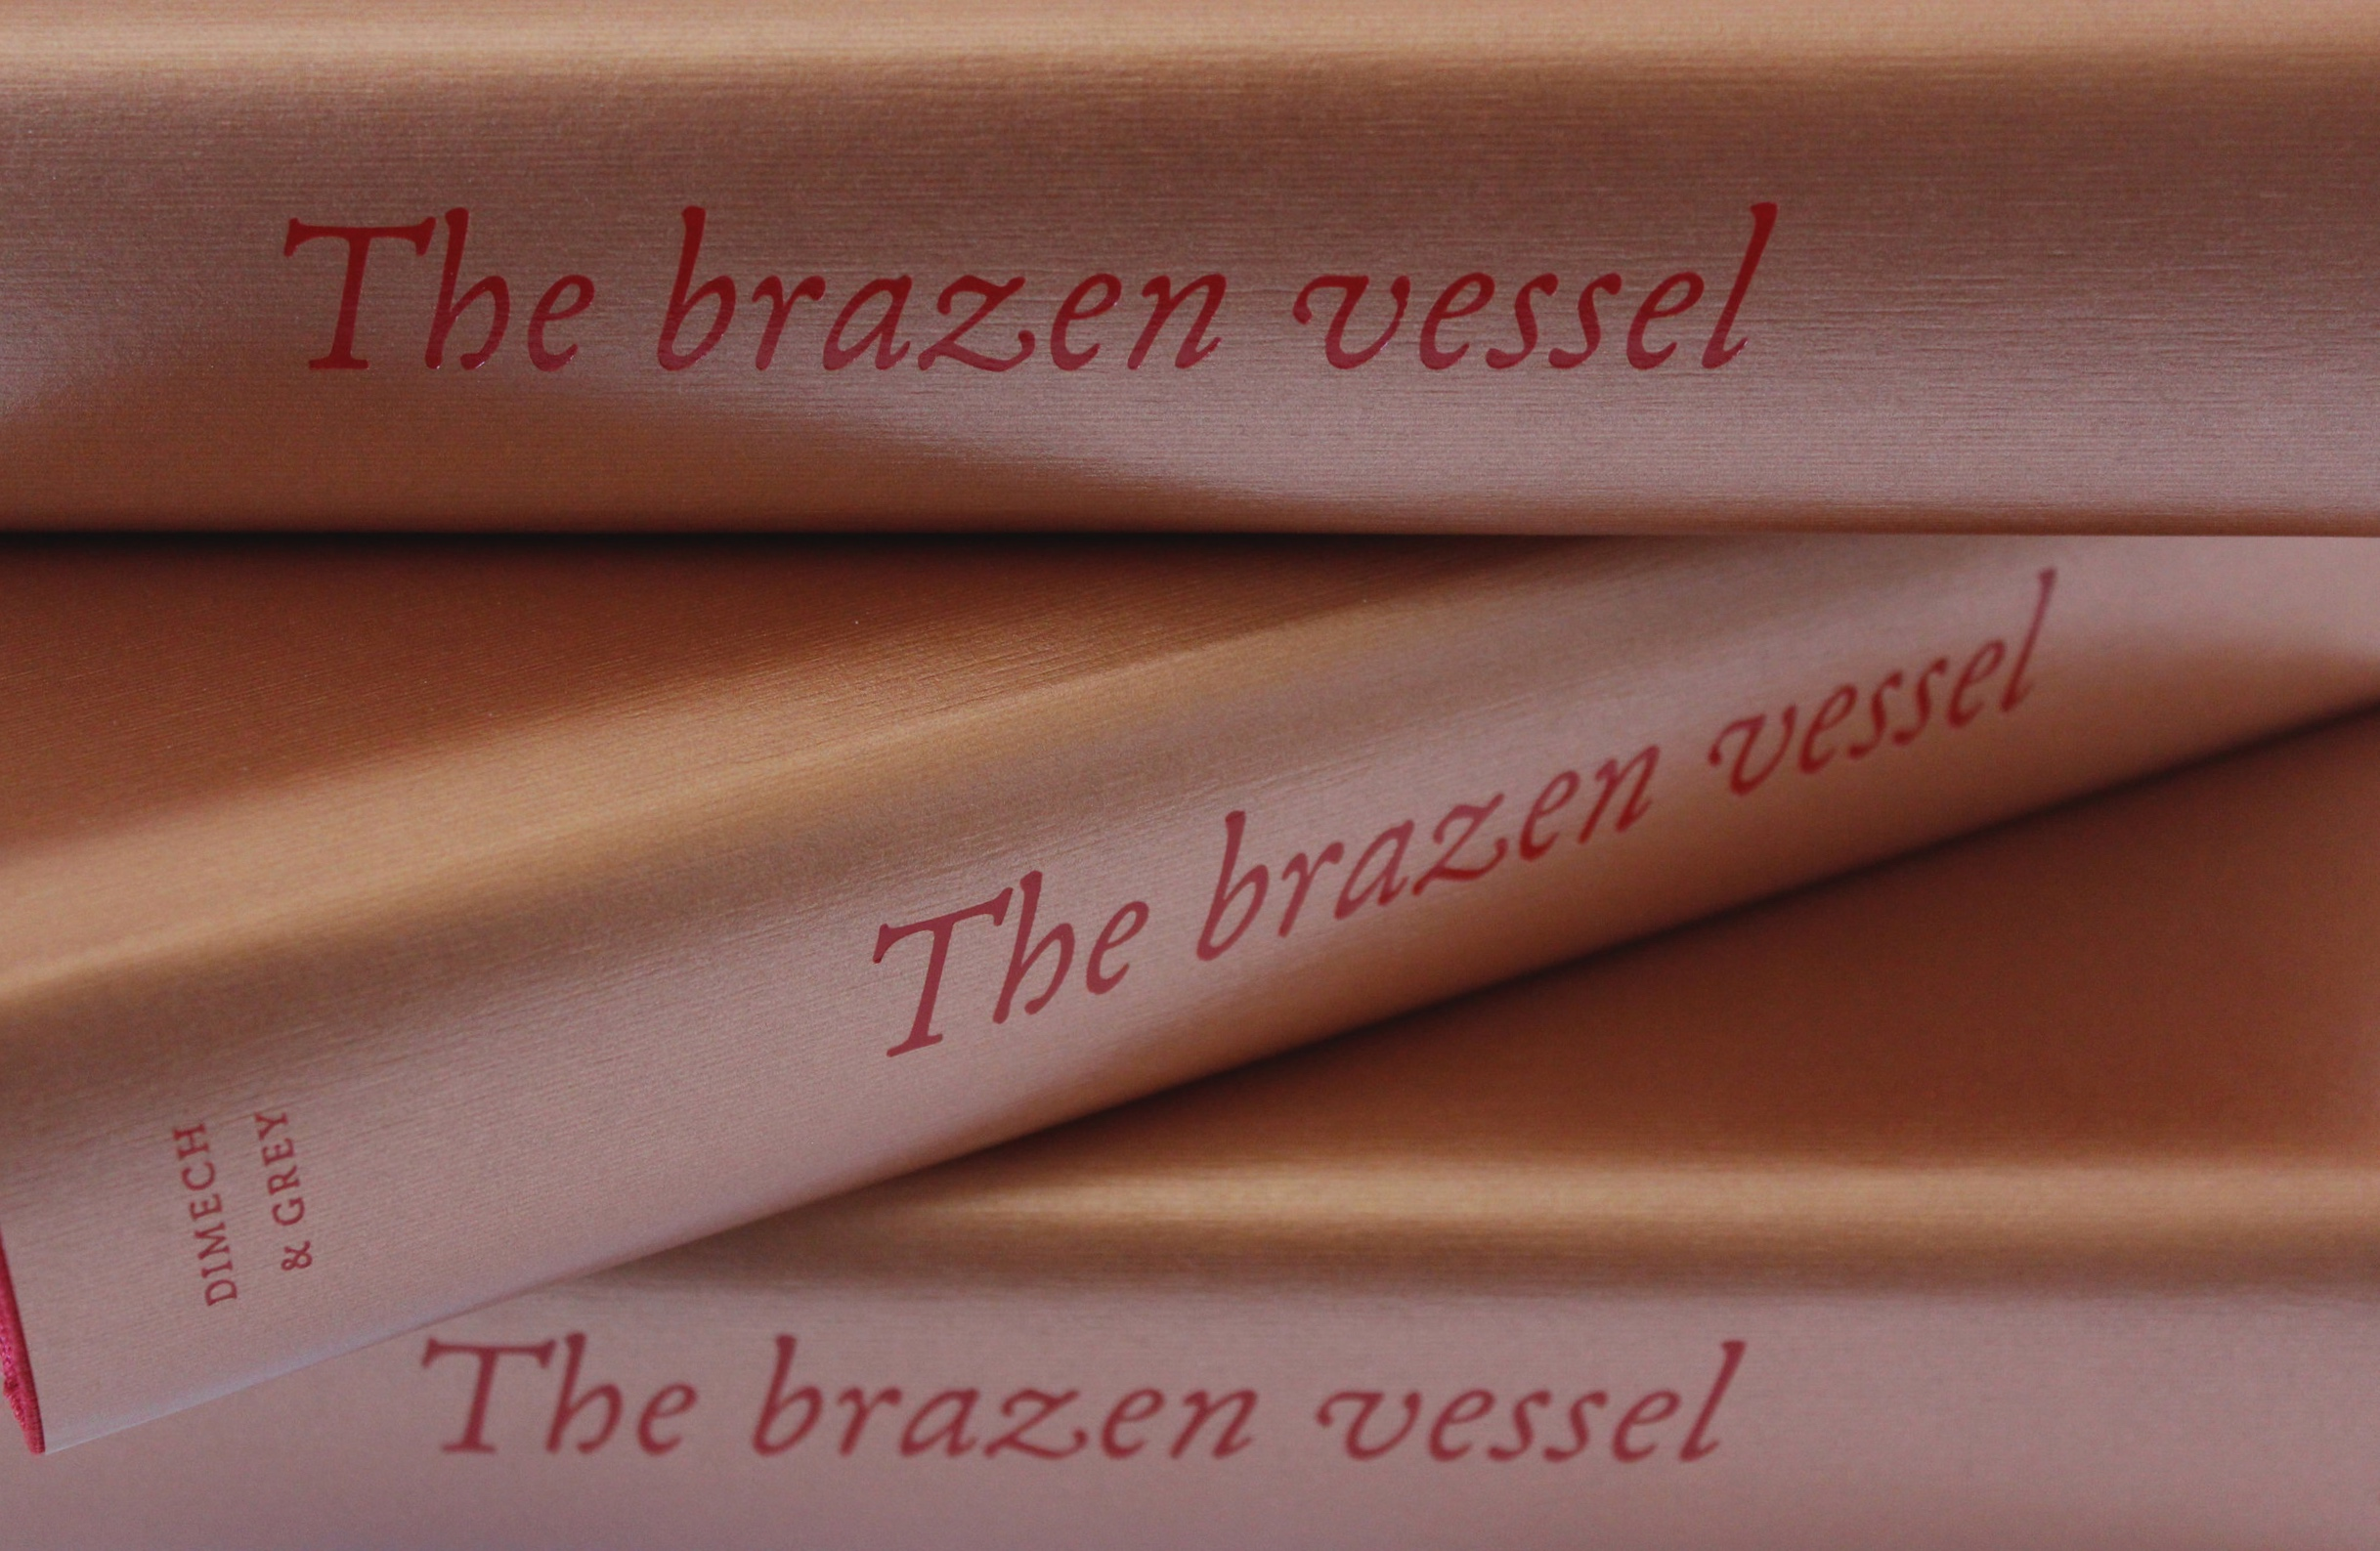 Standard edition spines